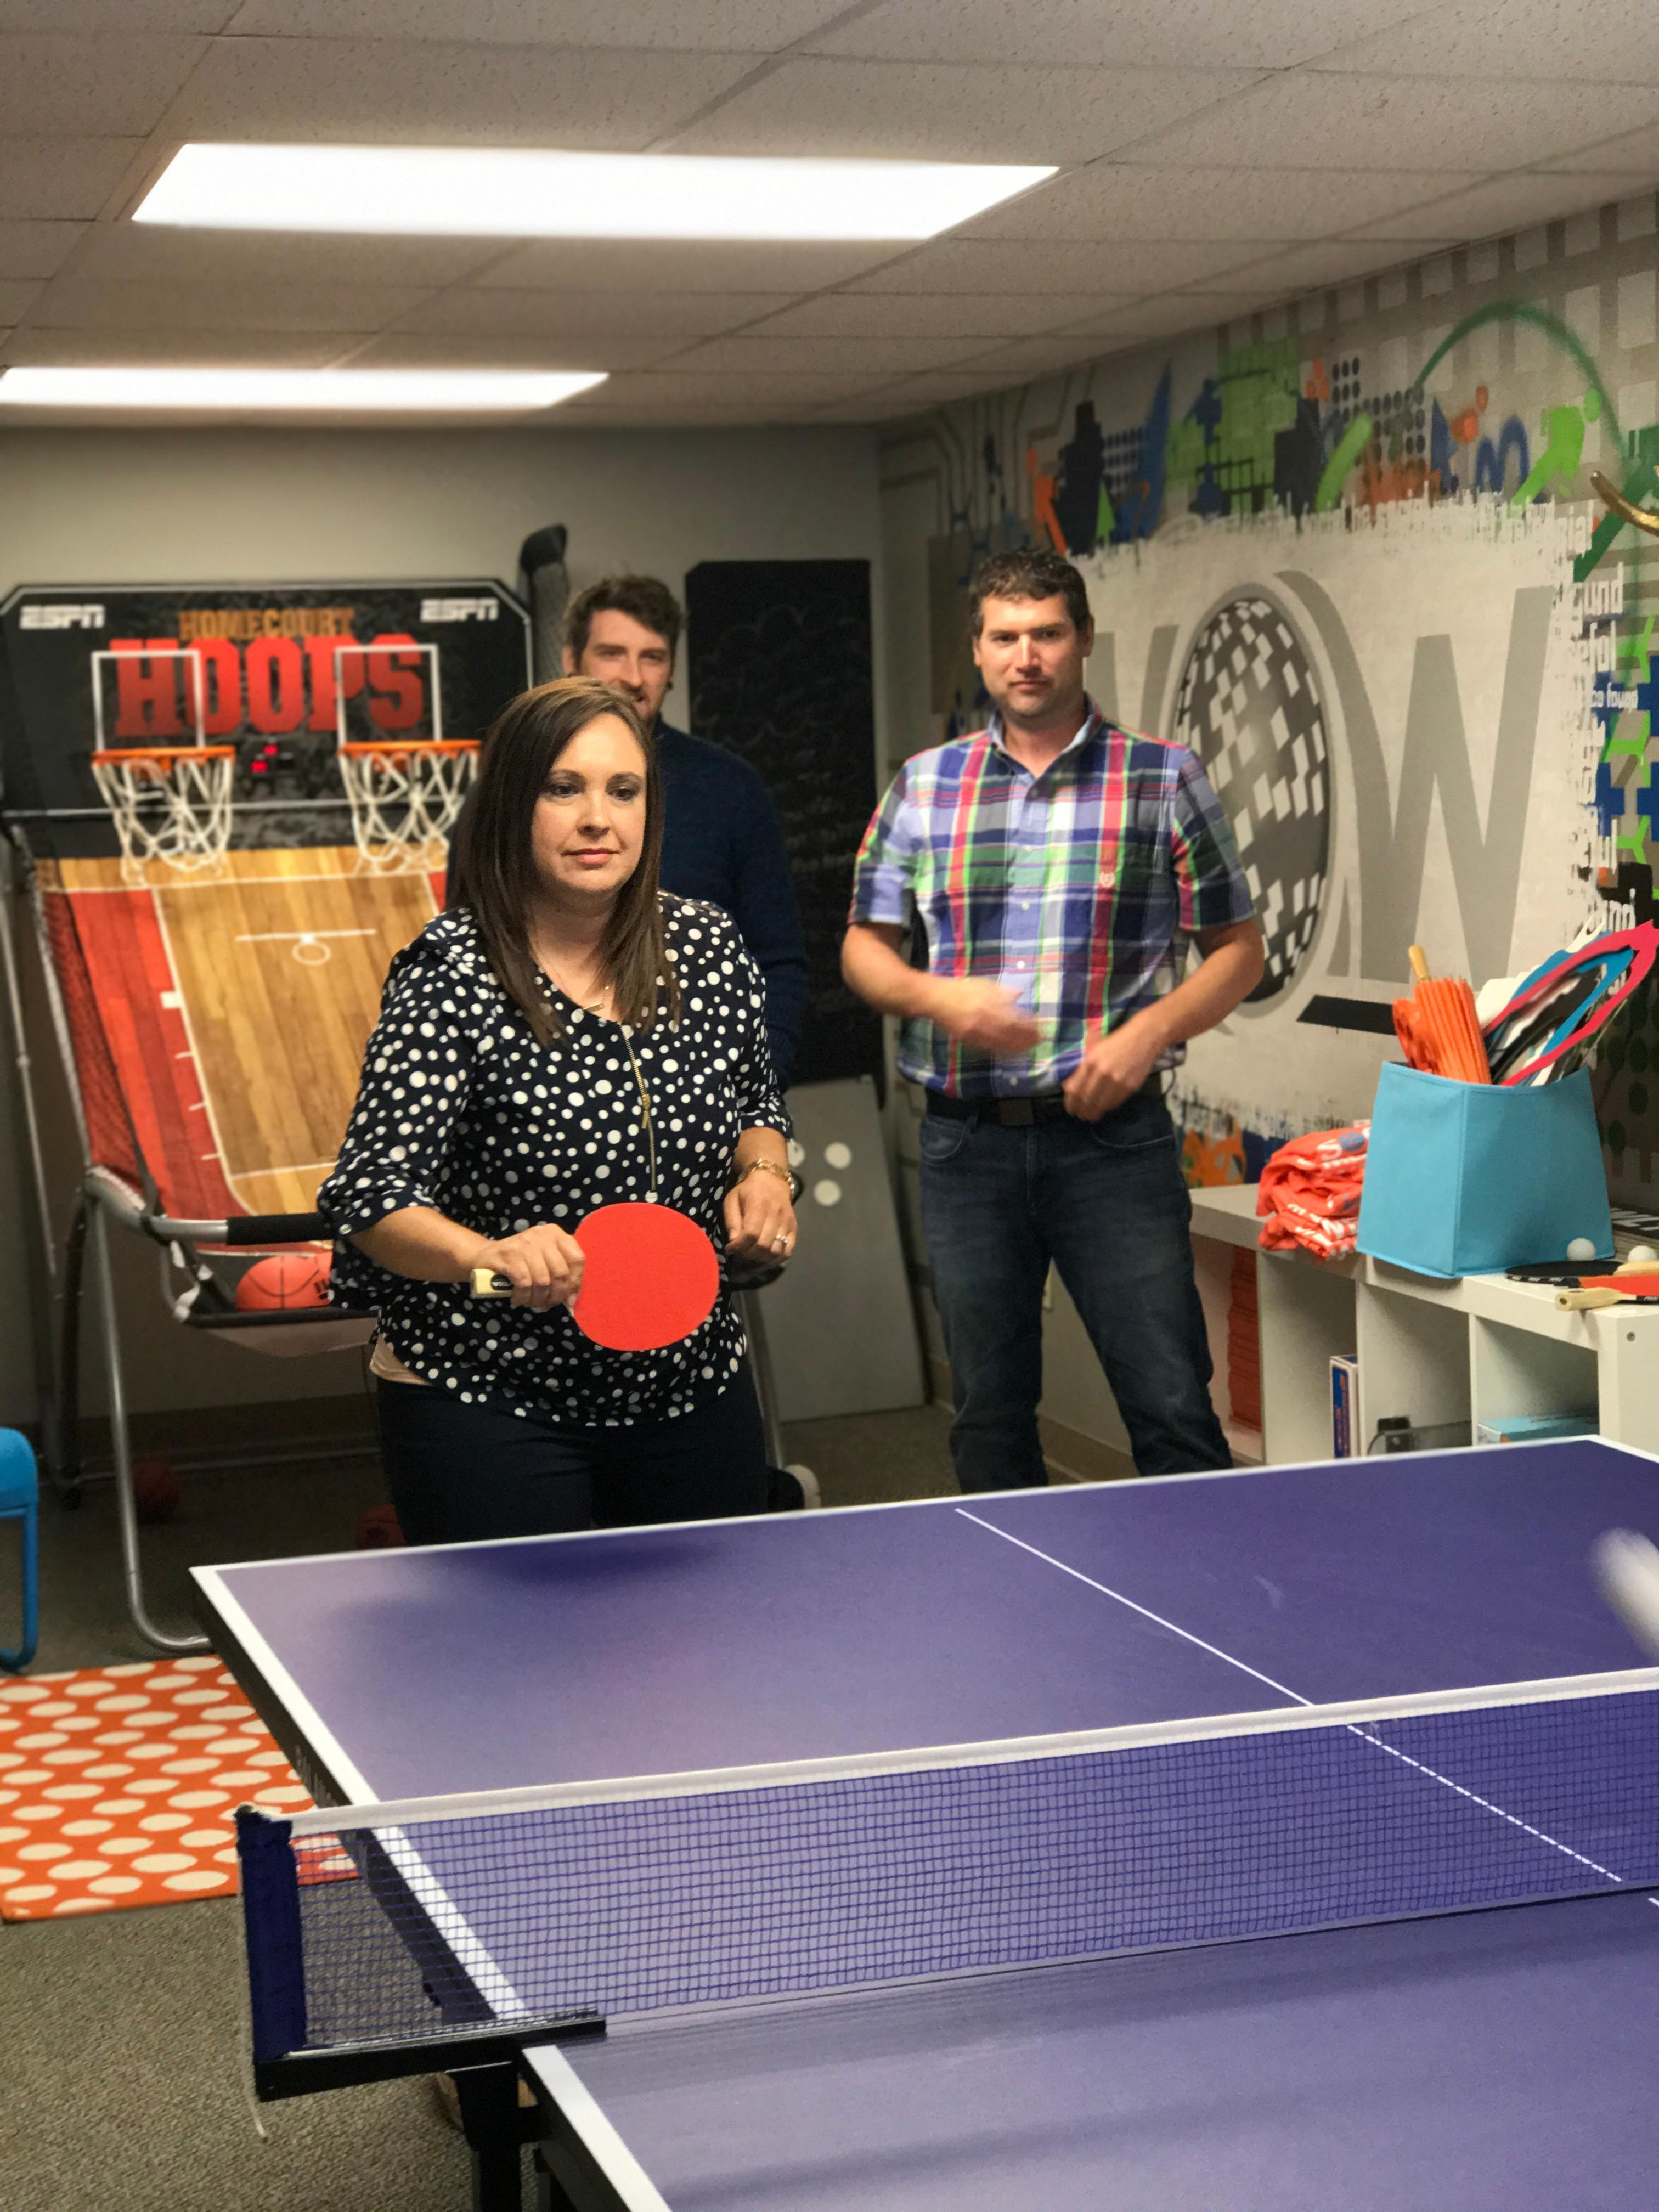 NOW Marketing Group Epic Ping-pong Battle